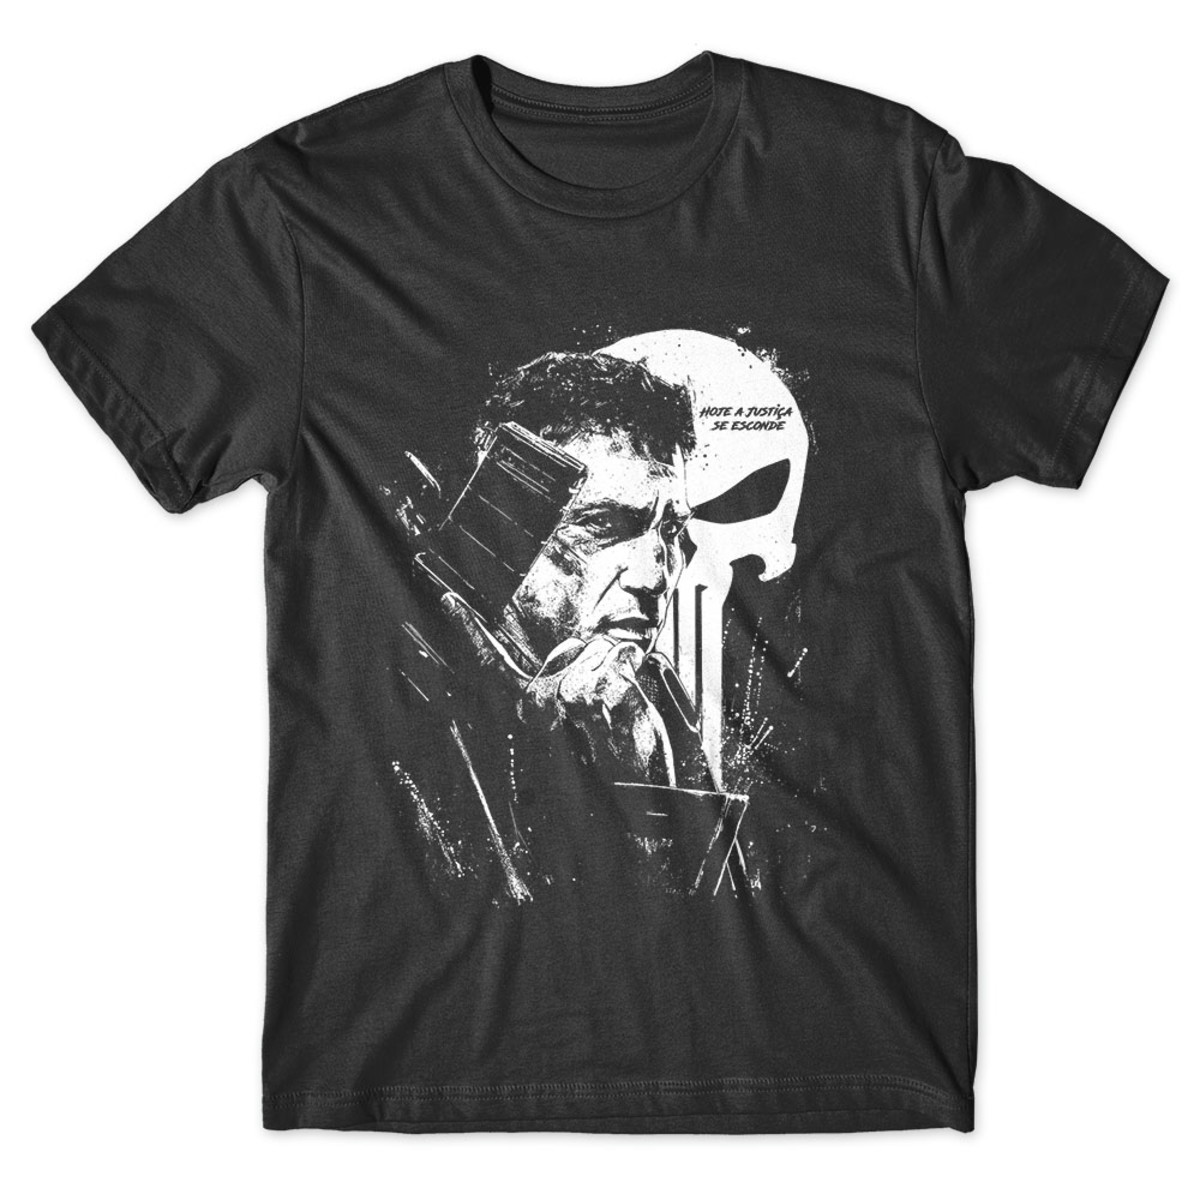 a3a52043e Camiseta O Justiceiro Camisa The Punisher Séries Seriados no Elo7 ...